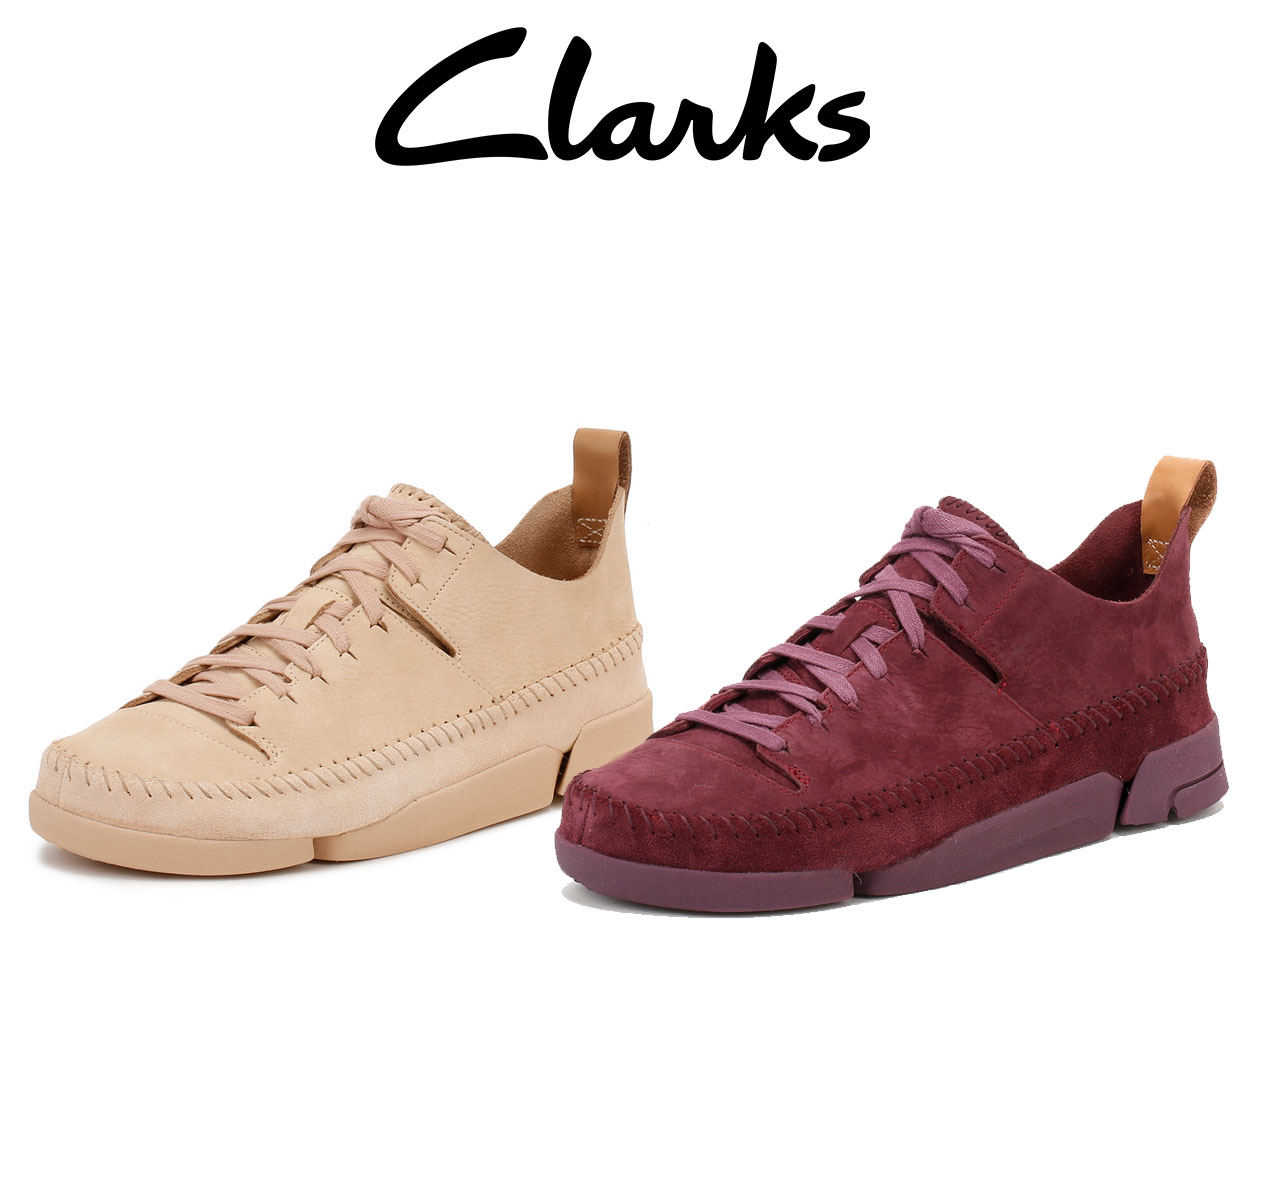 Details about Clarks Womens Trainers Pink or Purple Trigenic Flex Nubuck  Leather Lace Up e7c3e56ff5